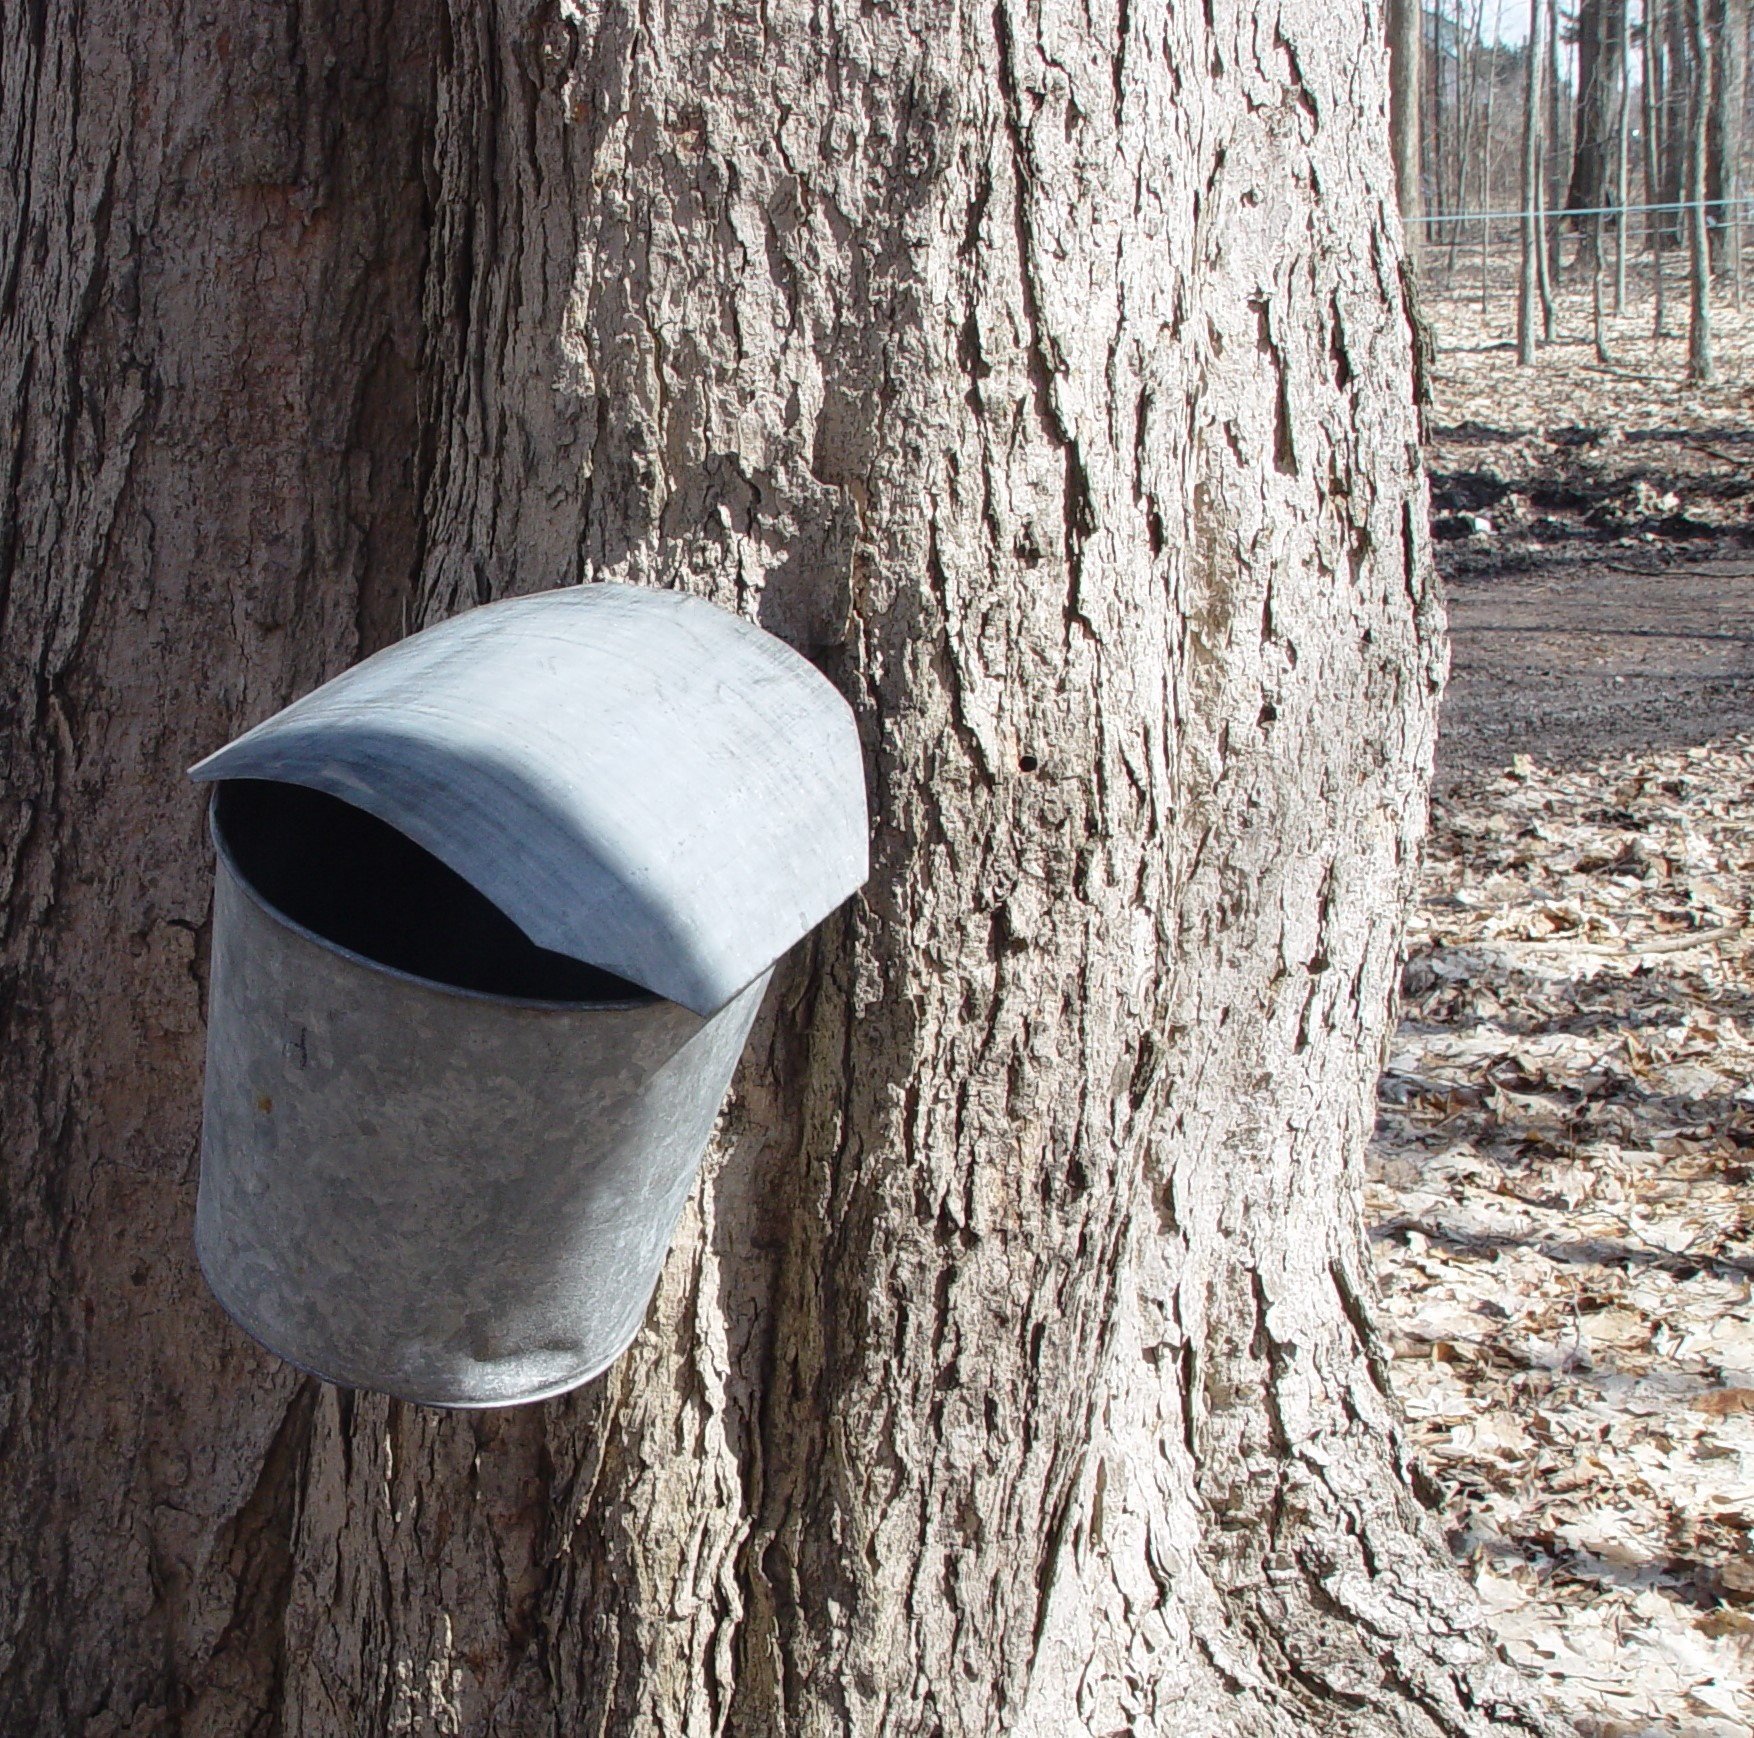 Sugar Maple Tapped into Collection Can